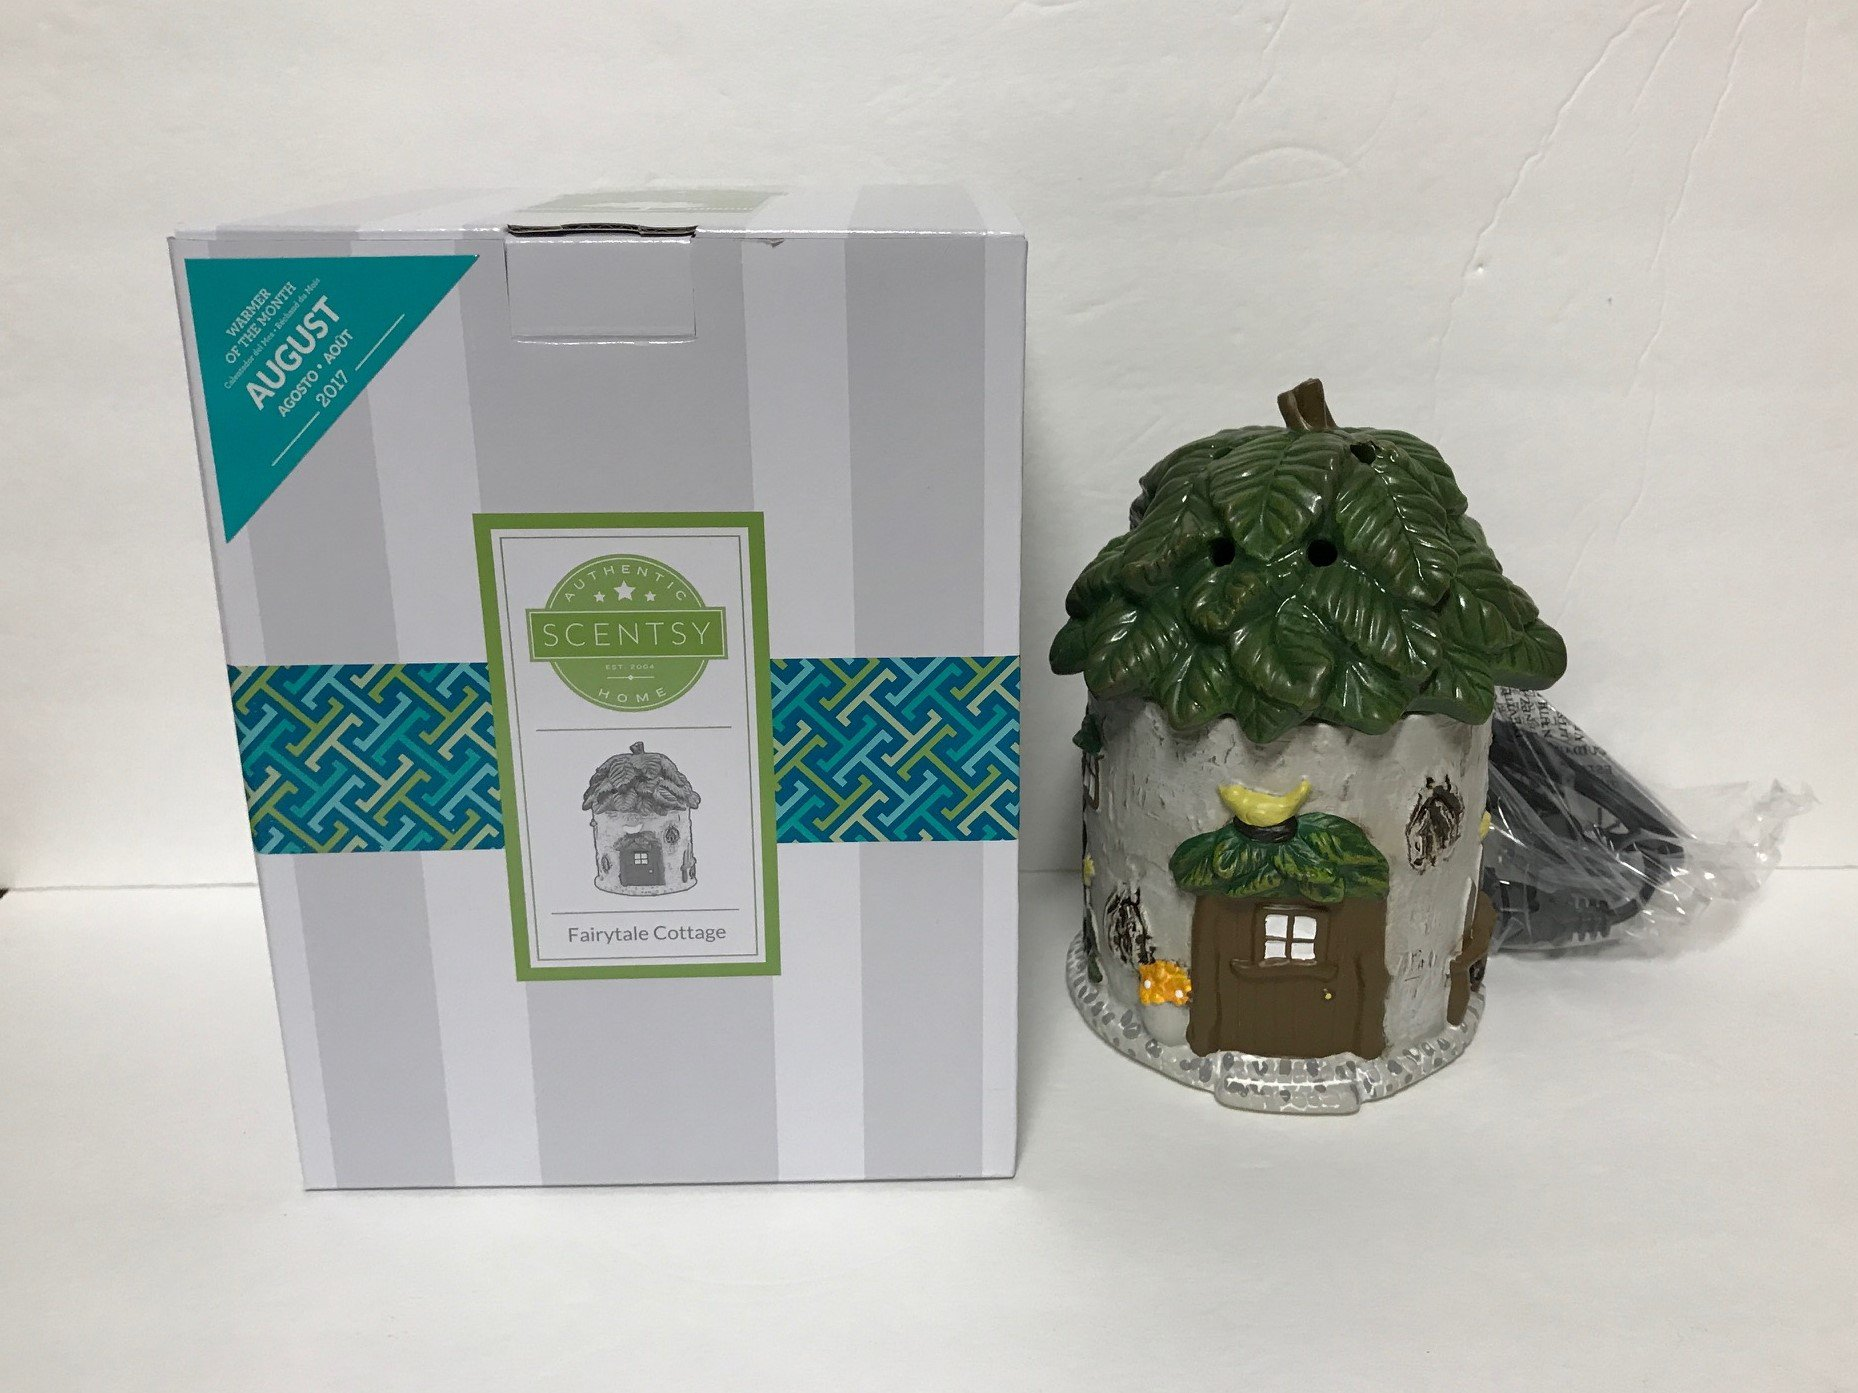 Scentsy Fairytale Cottage Full Size Warmer by Scentsy (Image #1)